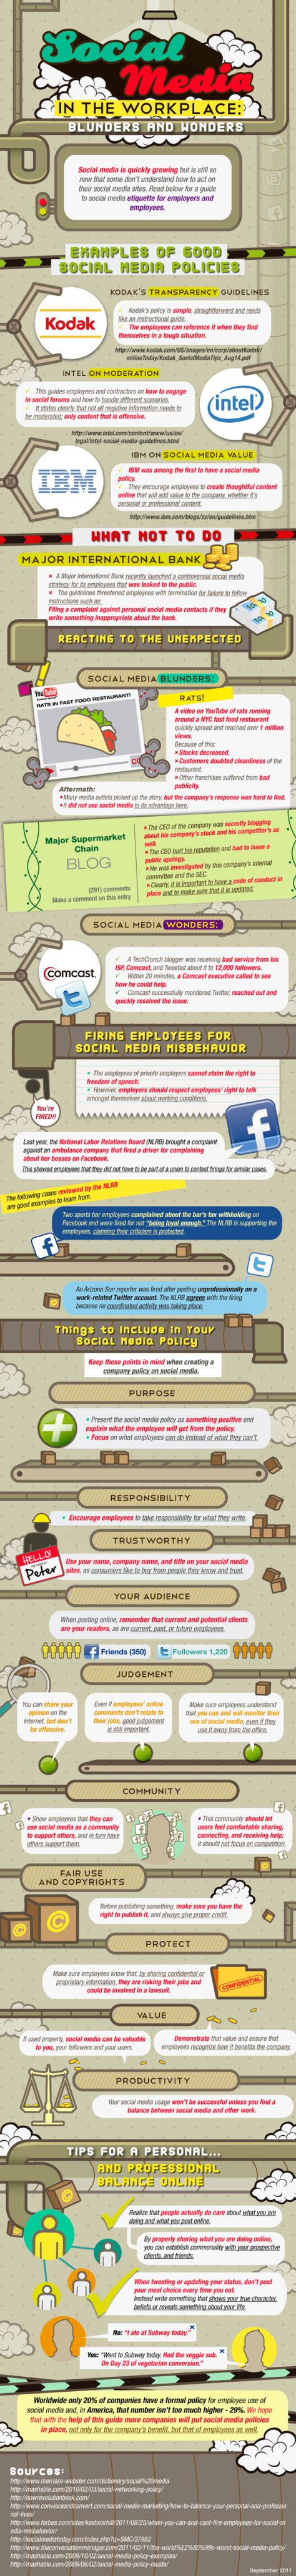 What Is Proper Digital Etiquette For Social Media Use In The Workplace? #infographic